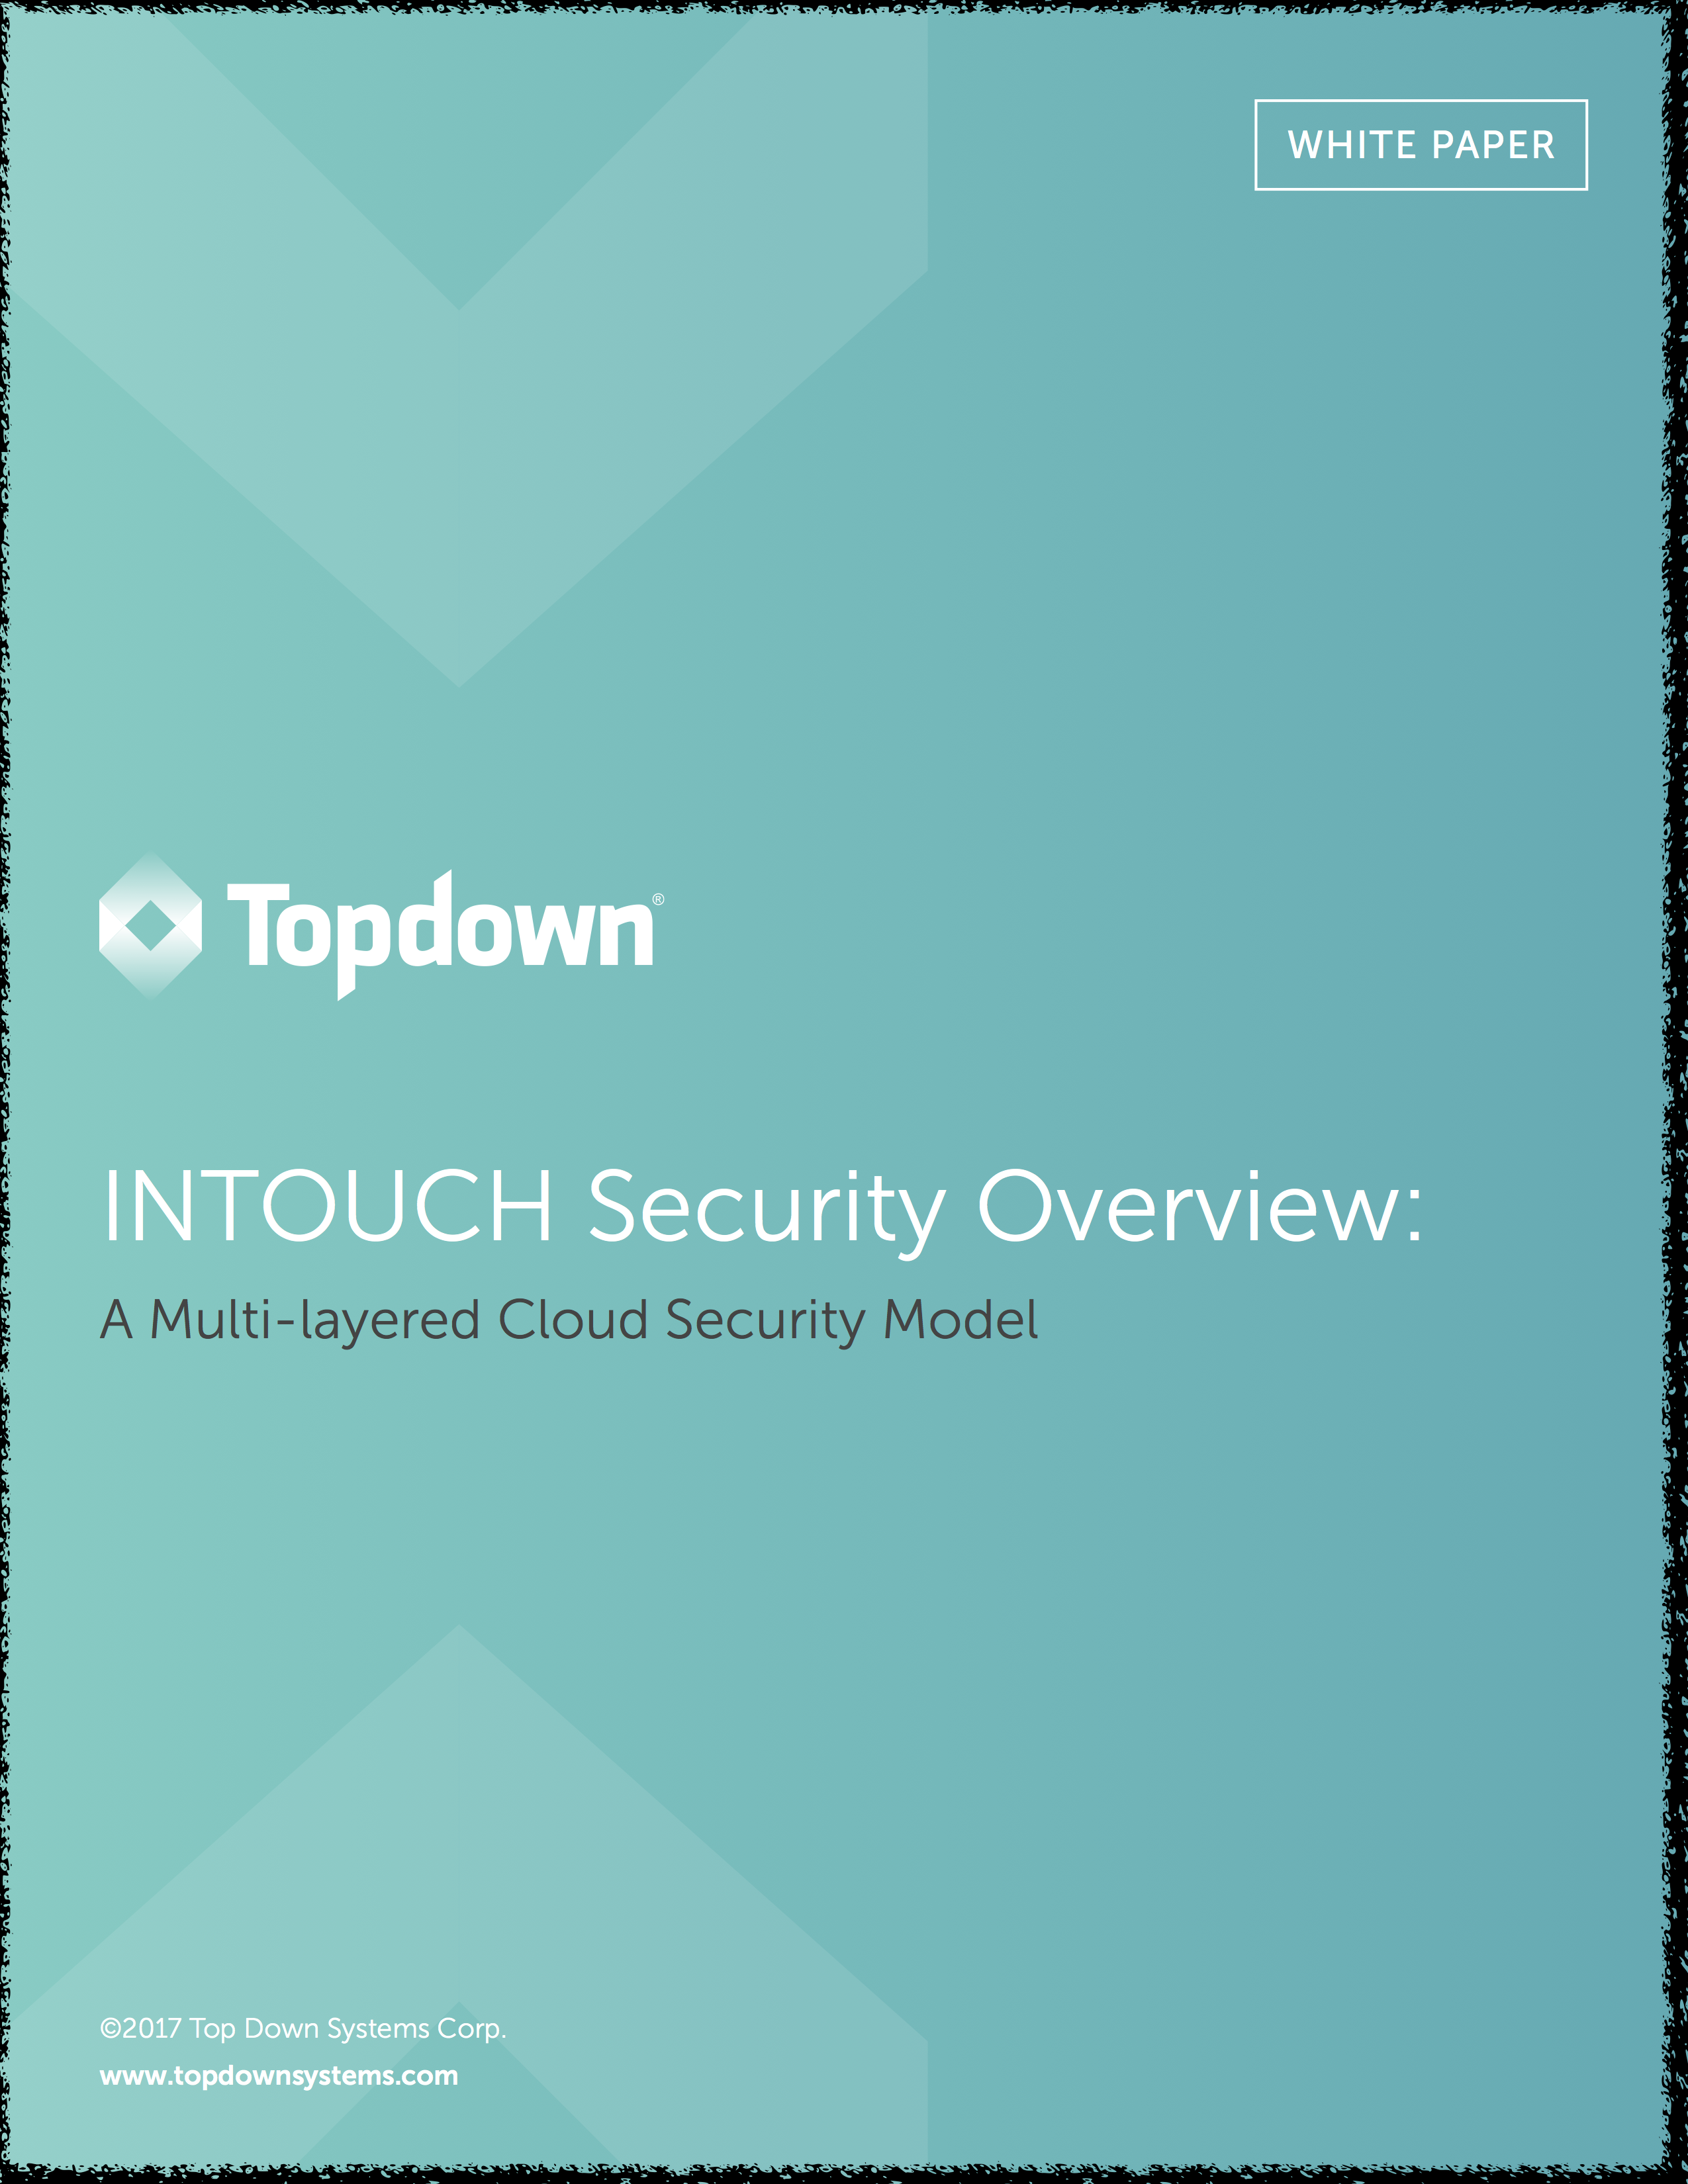 PDF on Topdown INTOUCH Security